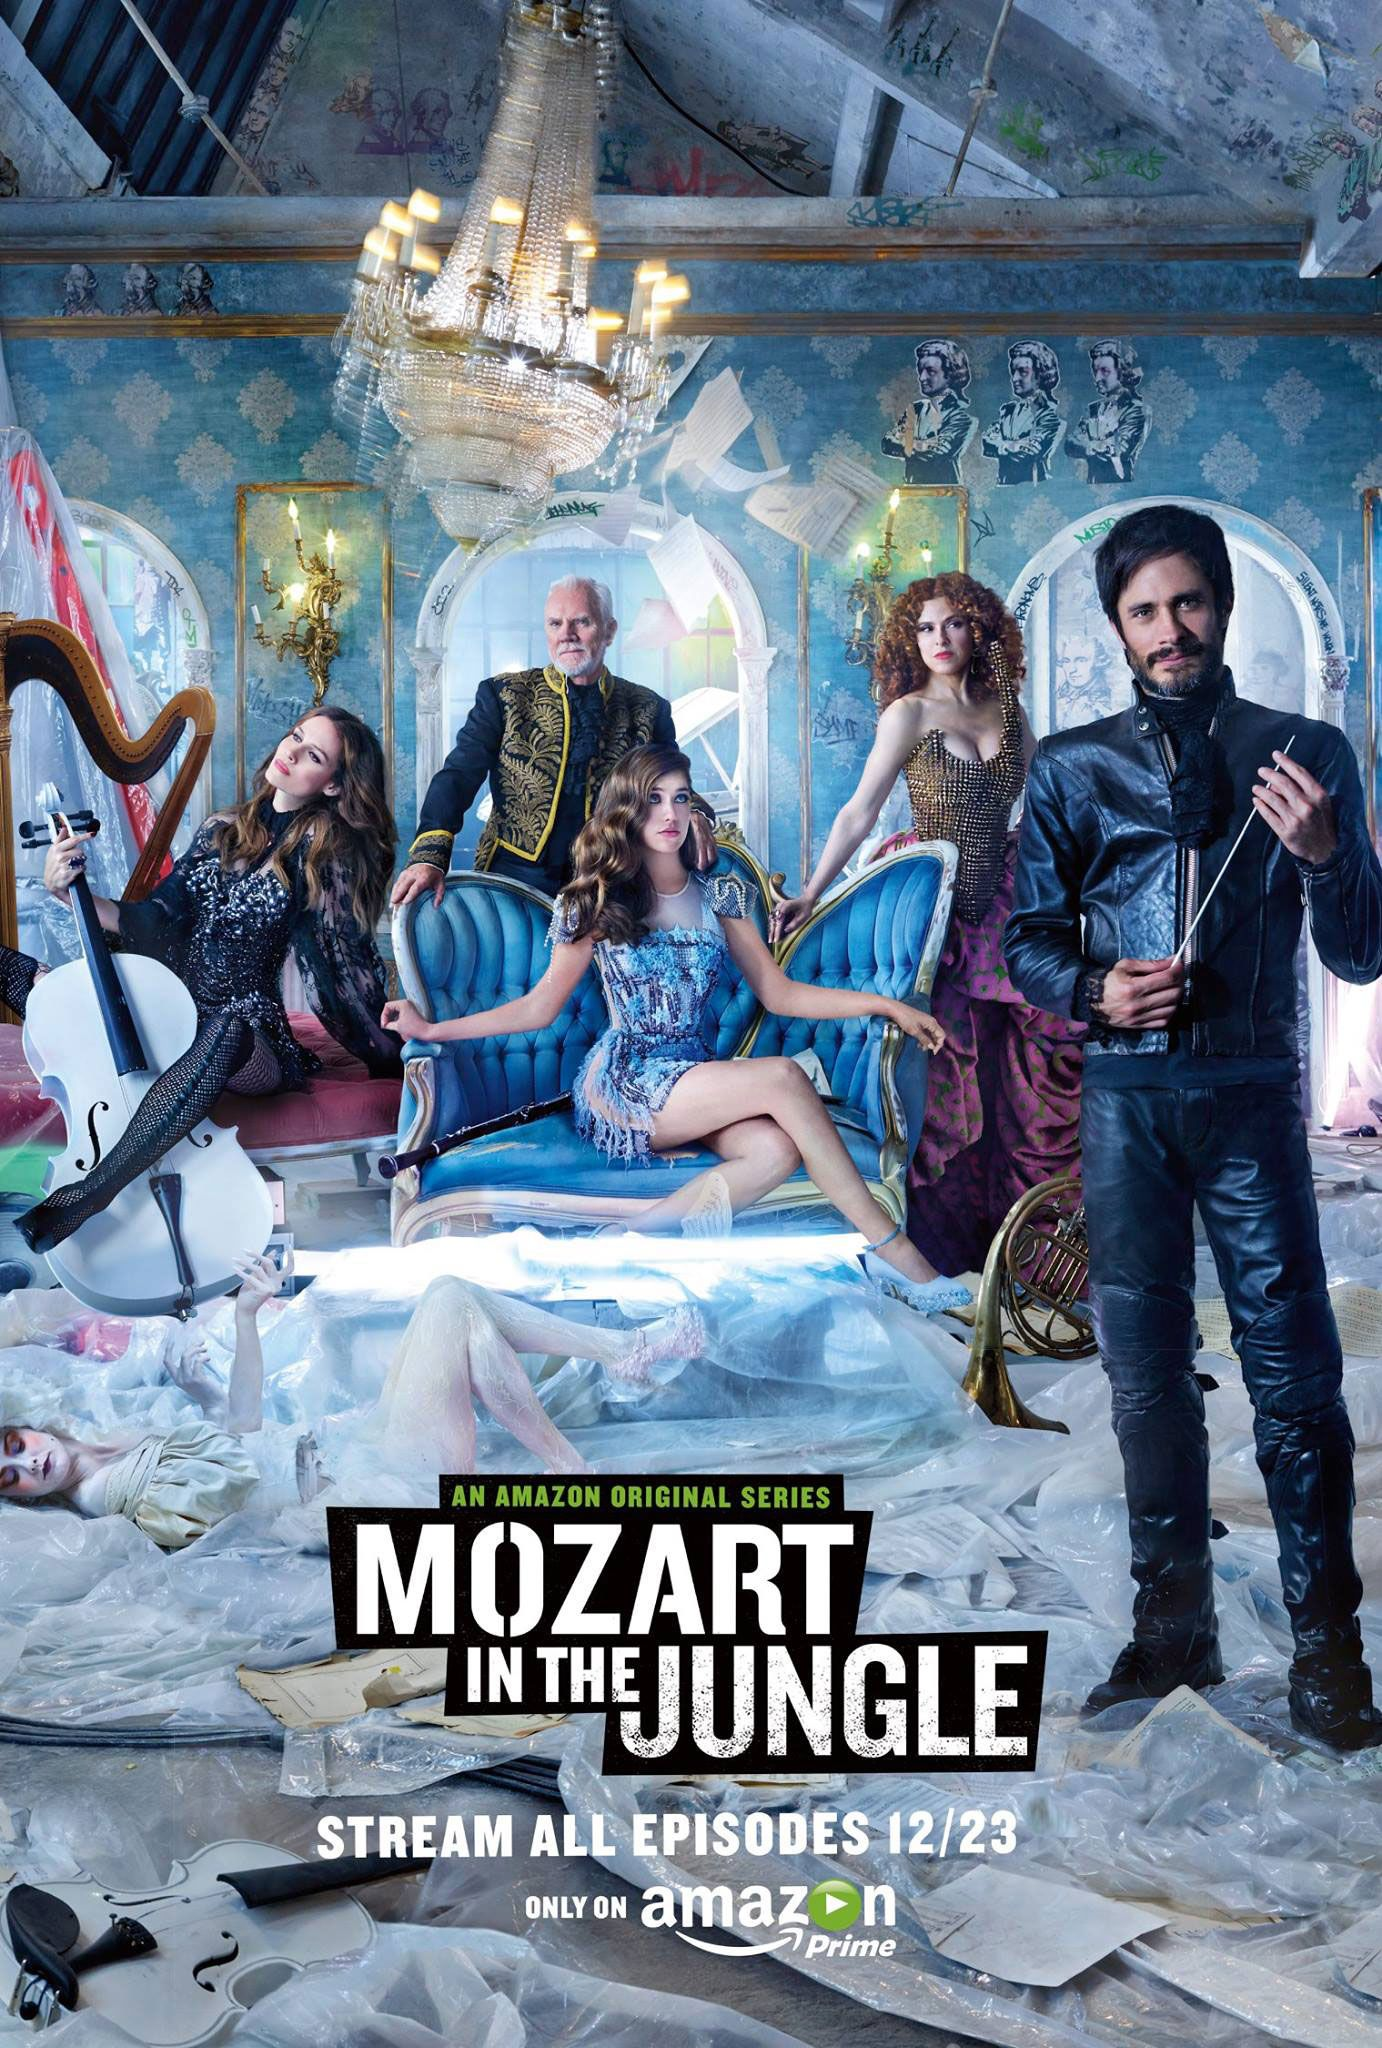 http://cdn.collider.com/wp-content/uploads/mozart-in-the-jungle-poster.jpg